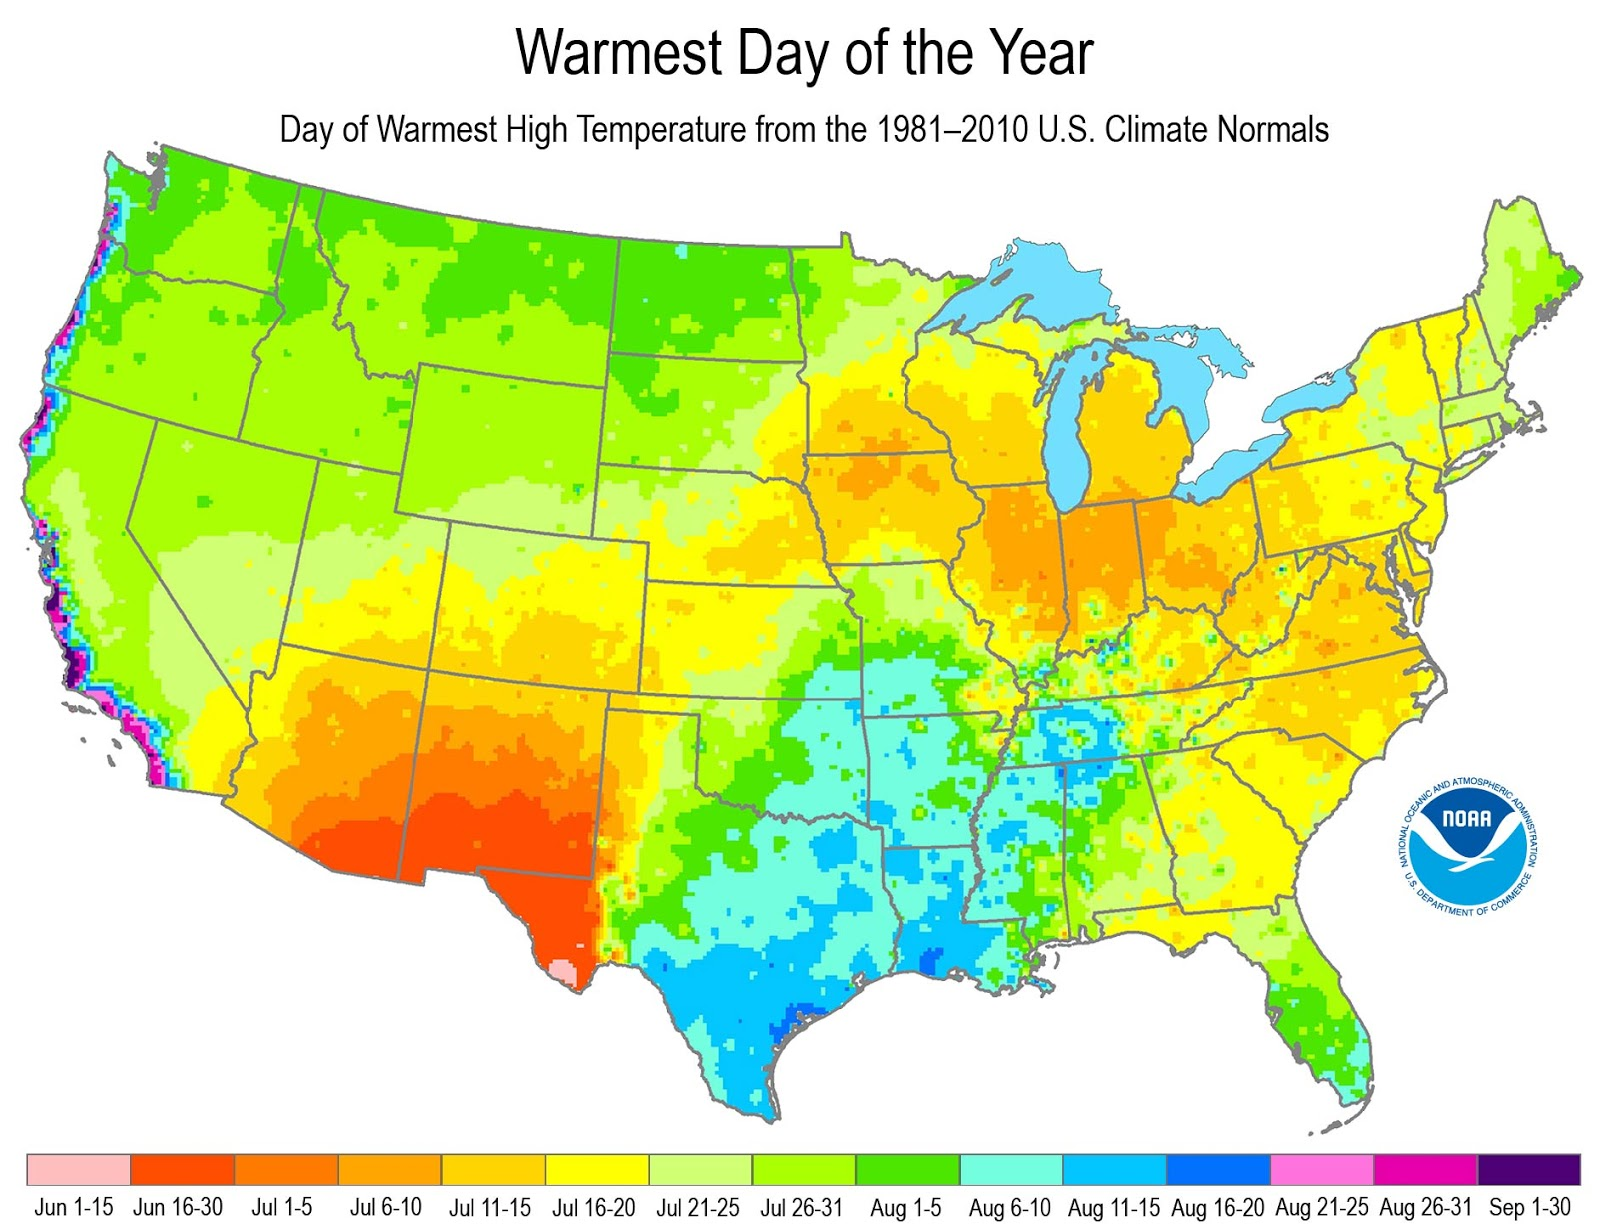 Cliff Mass Weather and Climate Blog Hottest Day of the Year Map